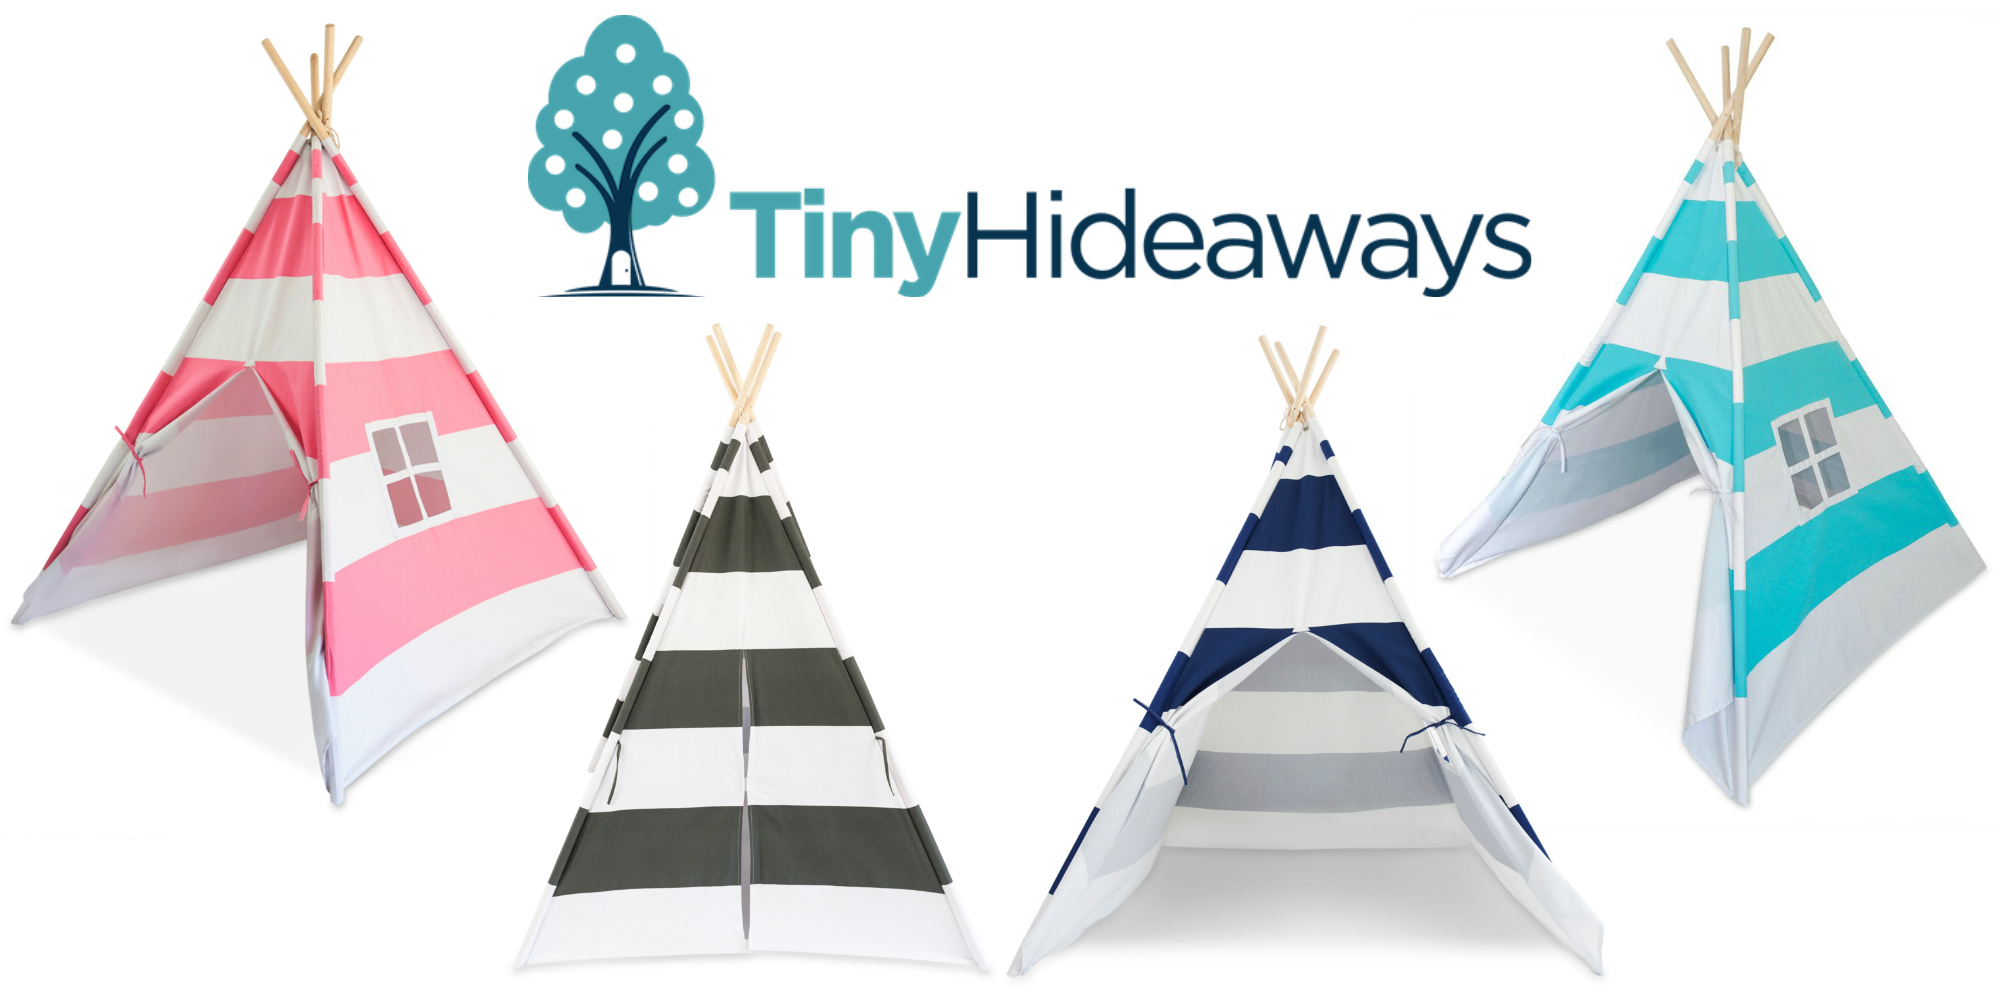 Tiny Hideaways Teepee Tents in US Japan Fam's Unique Gift Guide & Giveaway